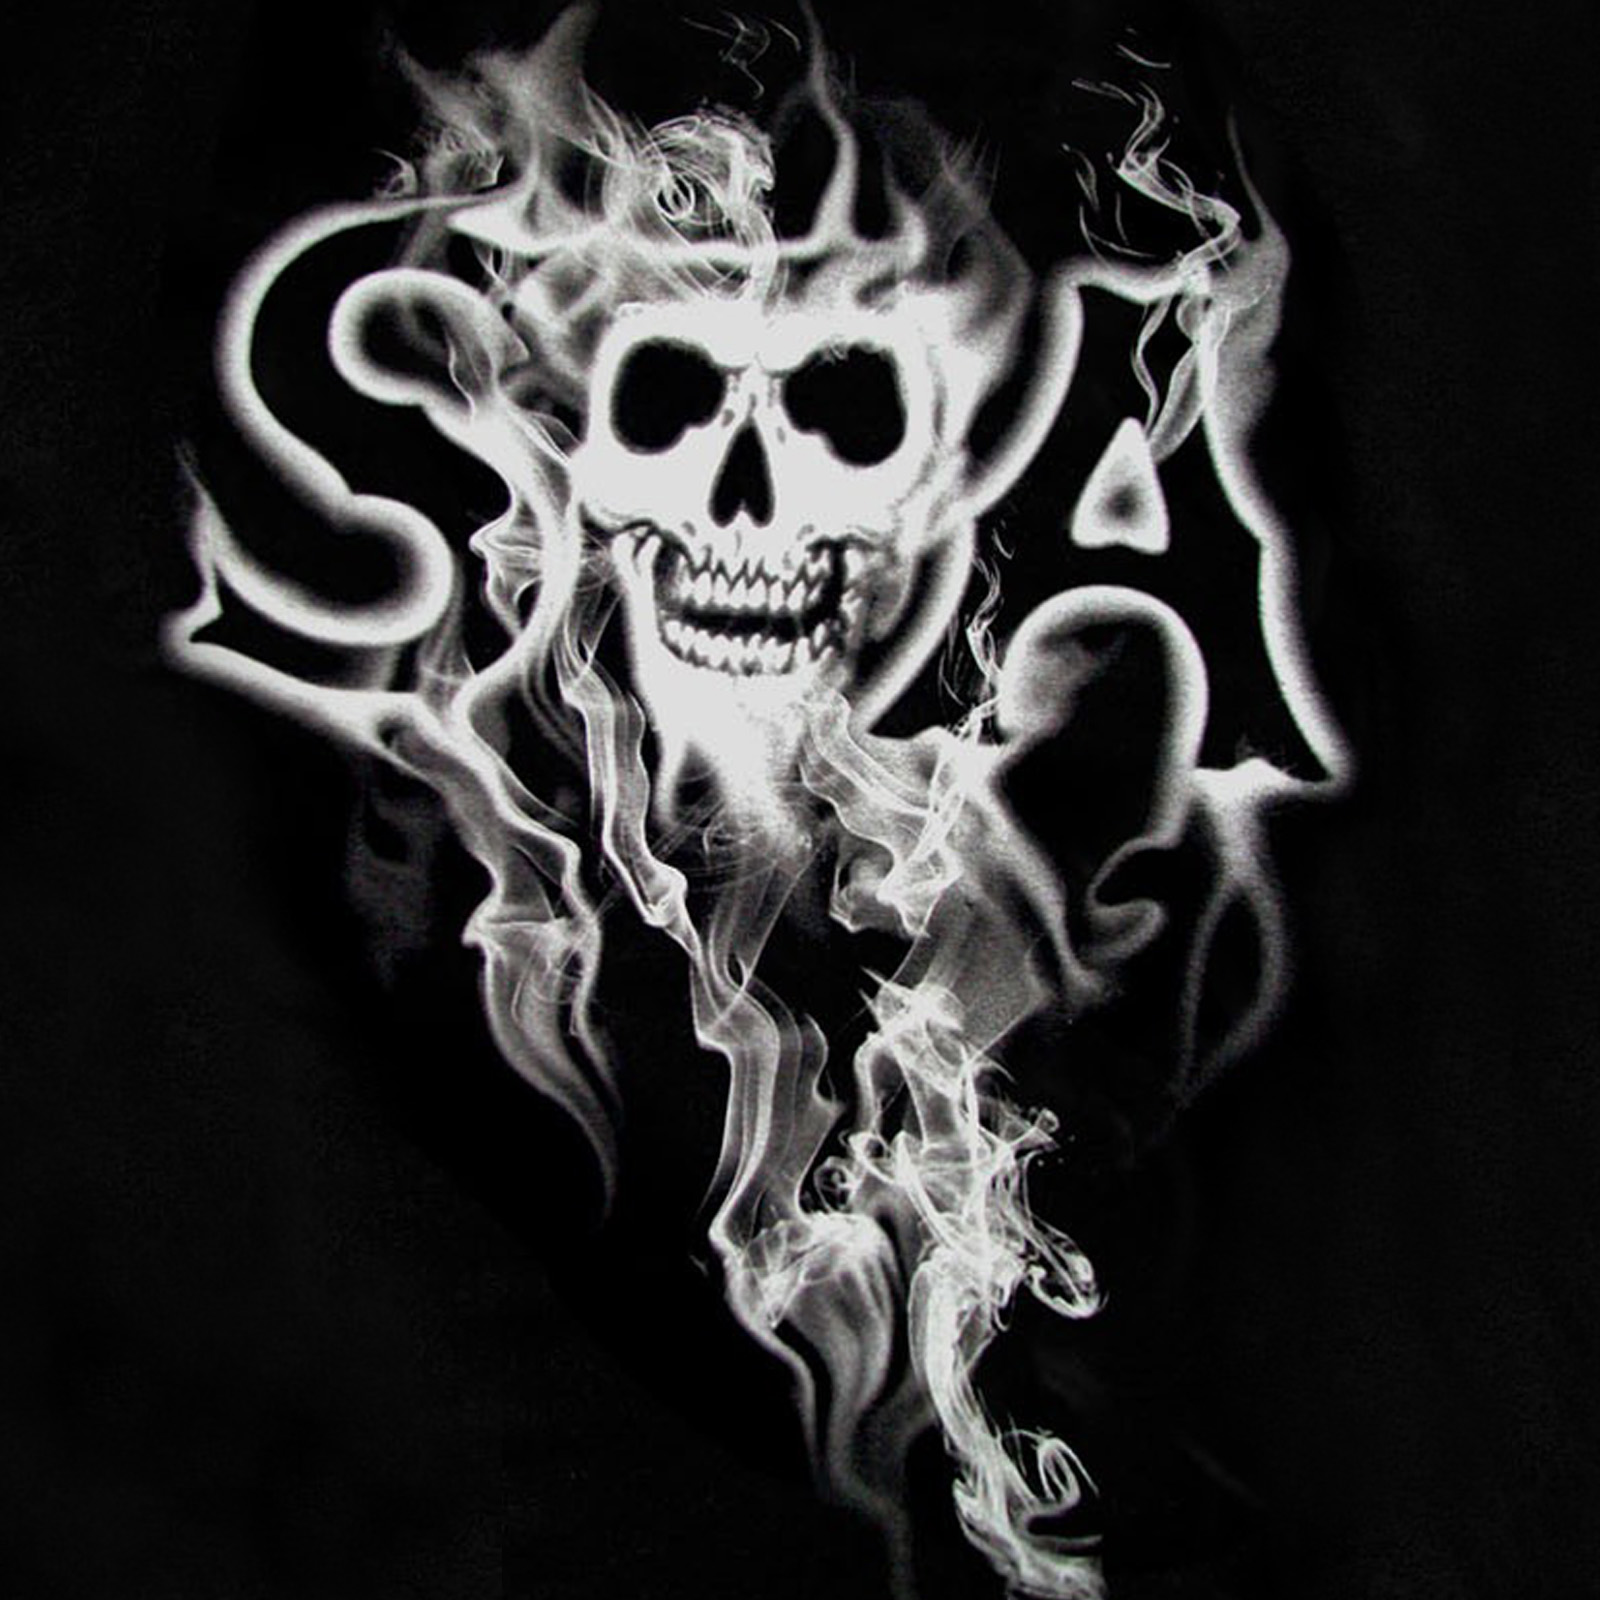 Sons of Anarchy - Smokey Reaper T-Shirt